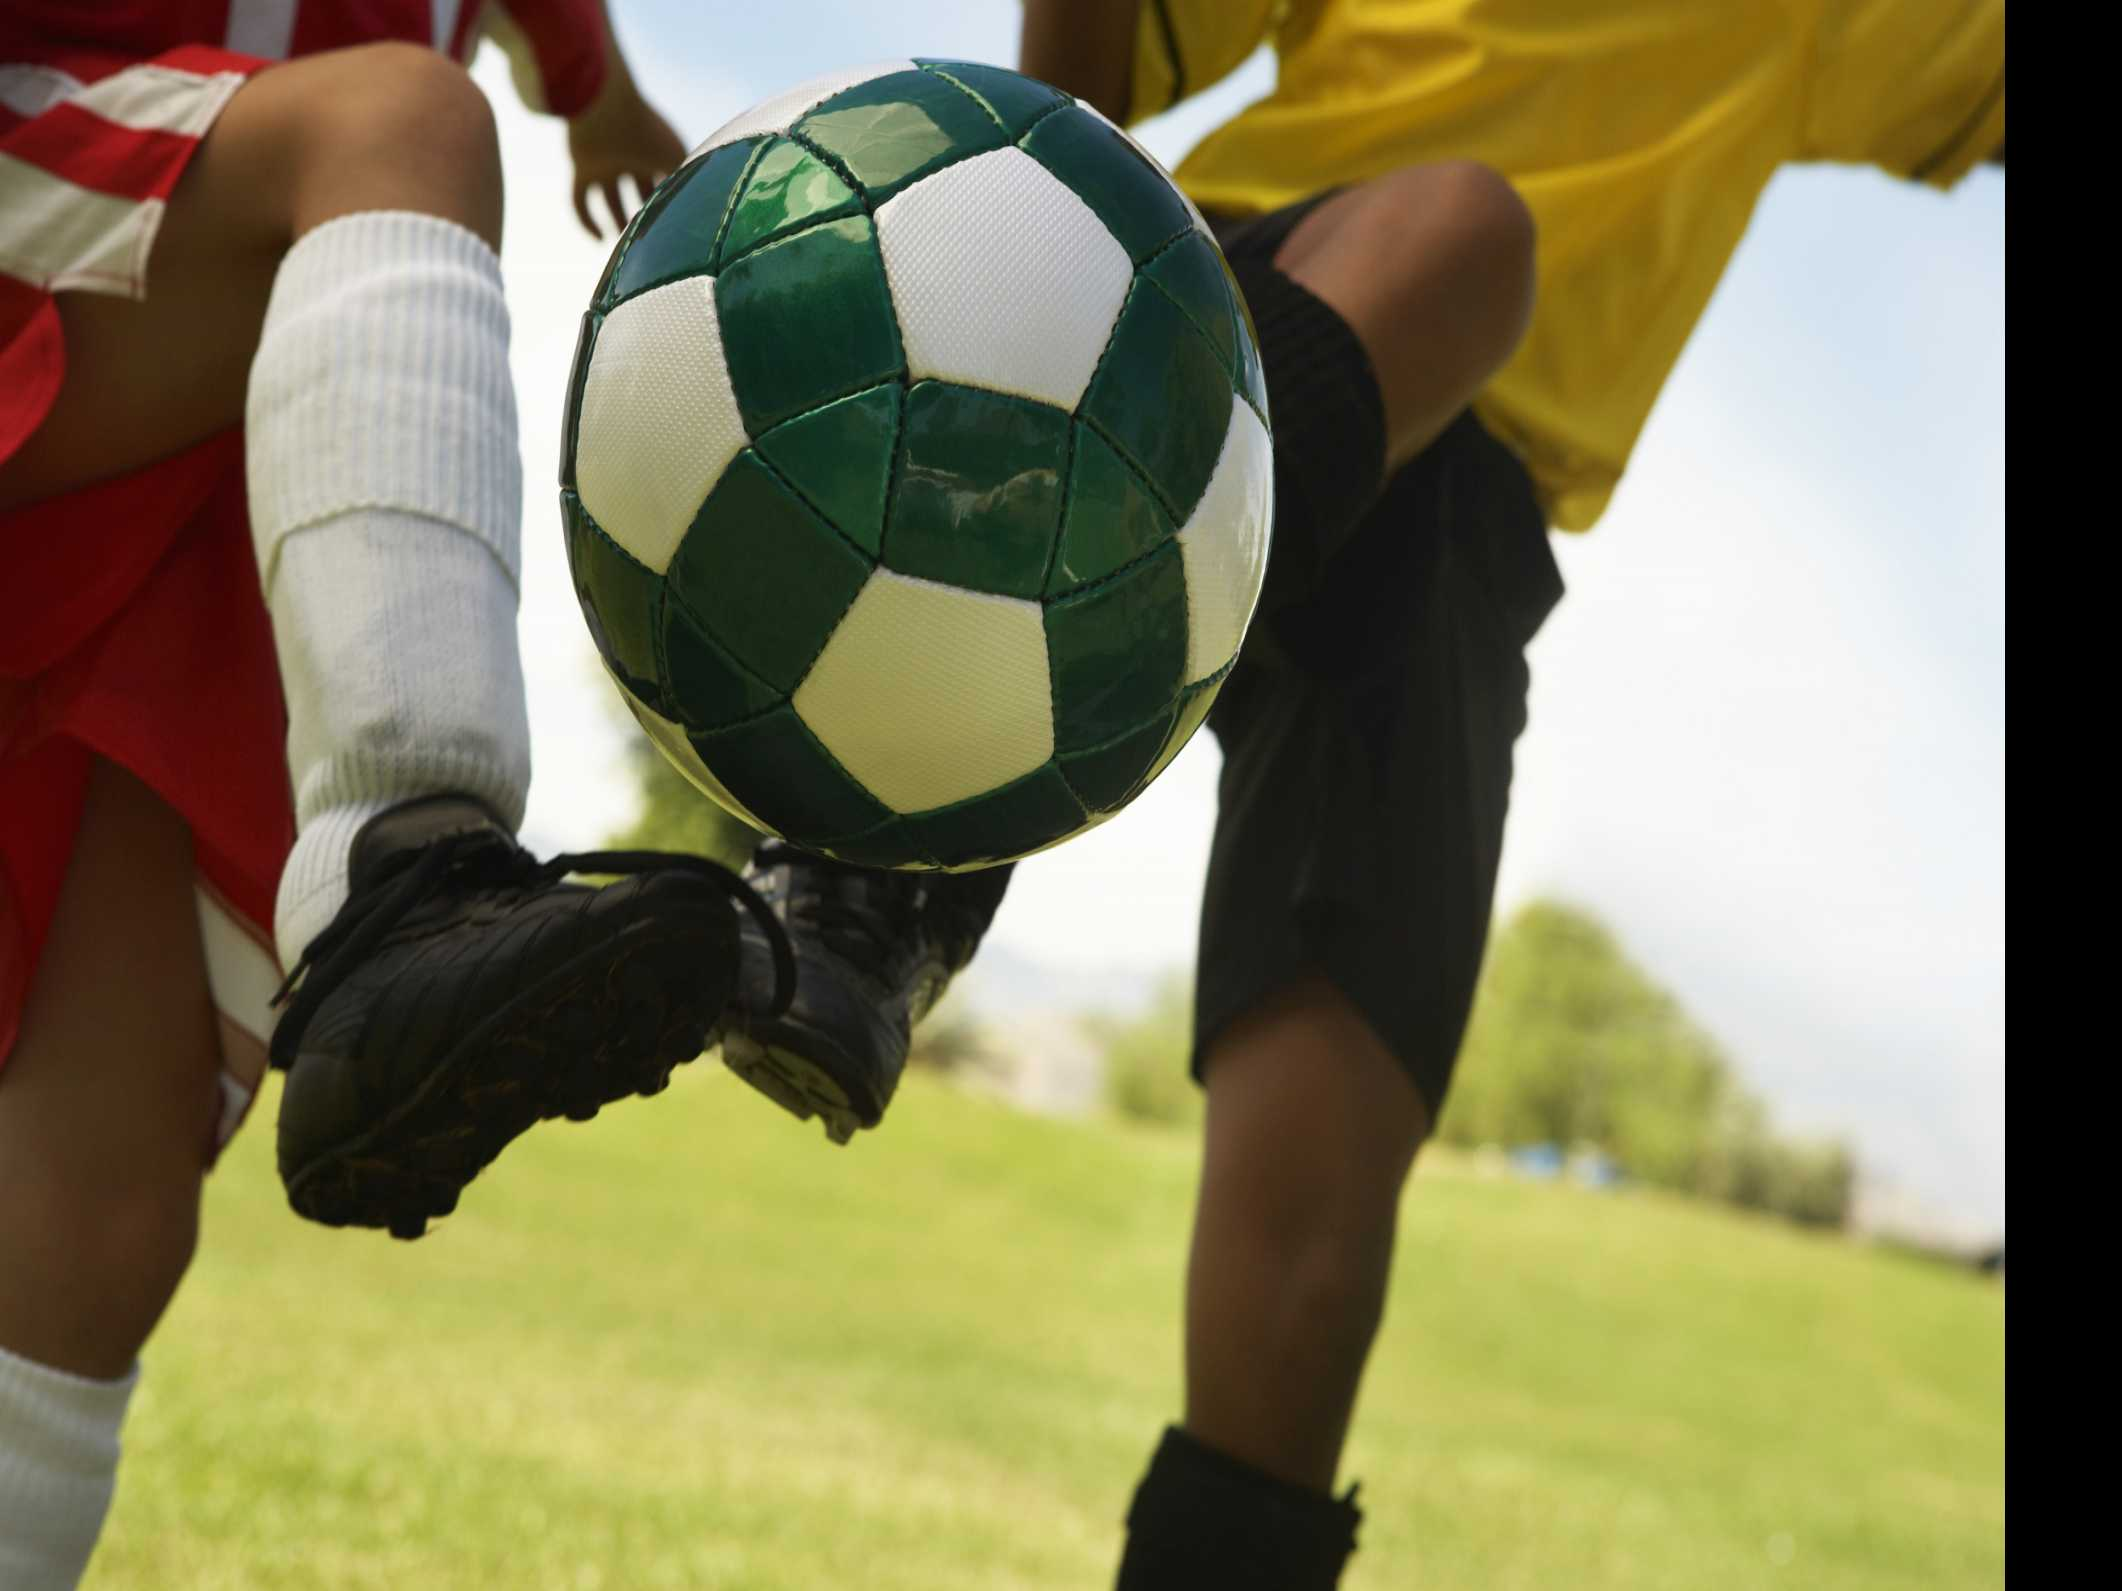 Three Gay Soccer Players May Publicly Come Out